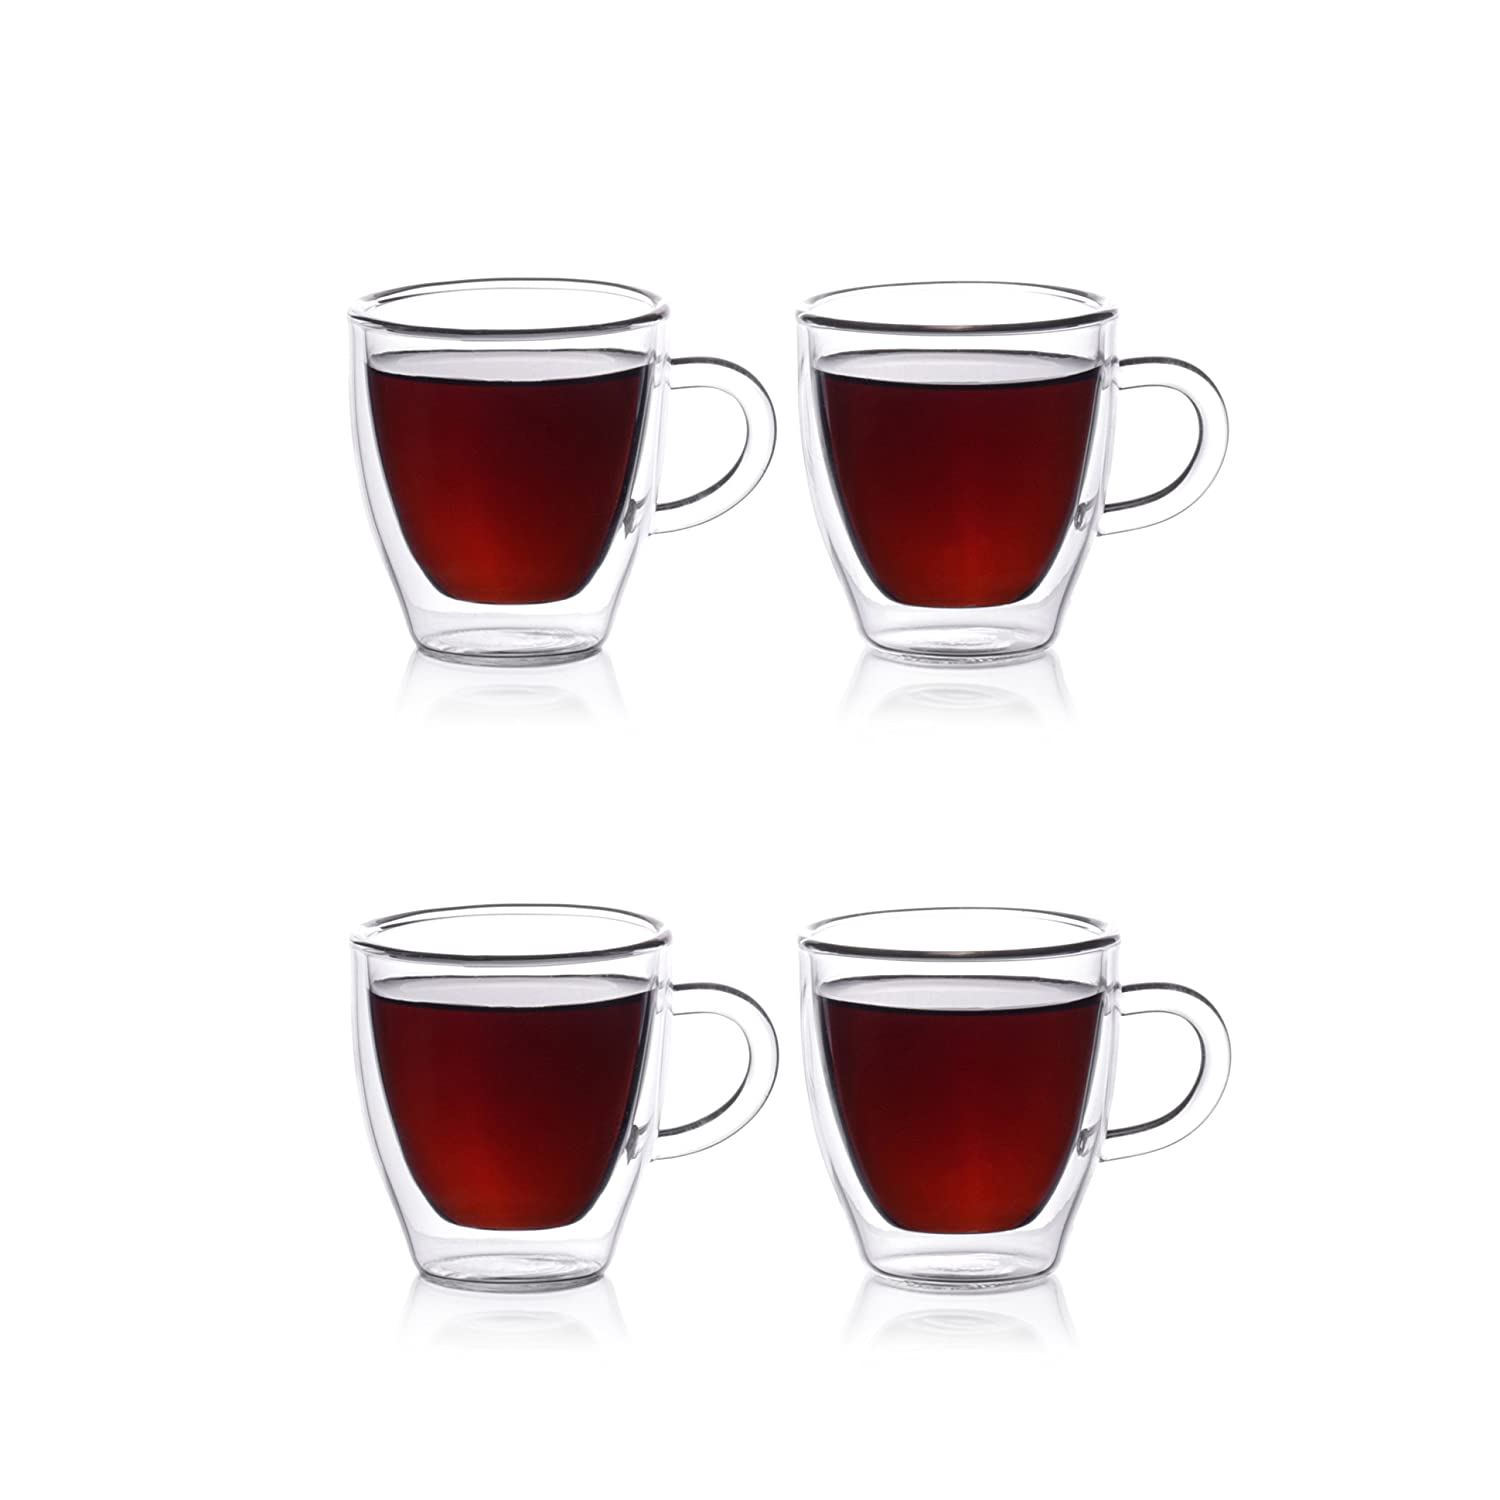 amazoncom  eparé espresso cups insulated glass demitasse set (  - amazoncom  eparé espresso cups insulated glass demitasse set ( oz ml)  double wall thermal tumbler cup  mug for drinking tea latte lungo